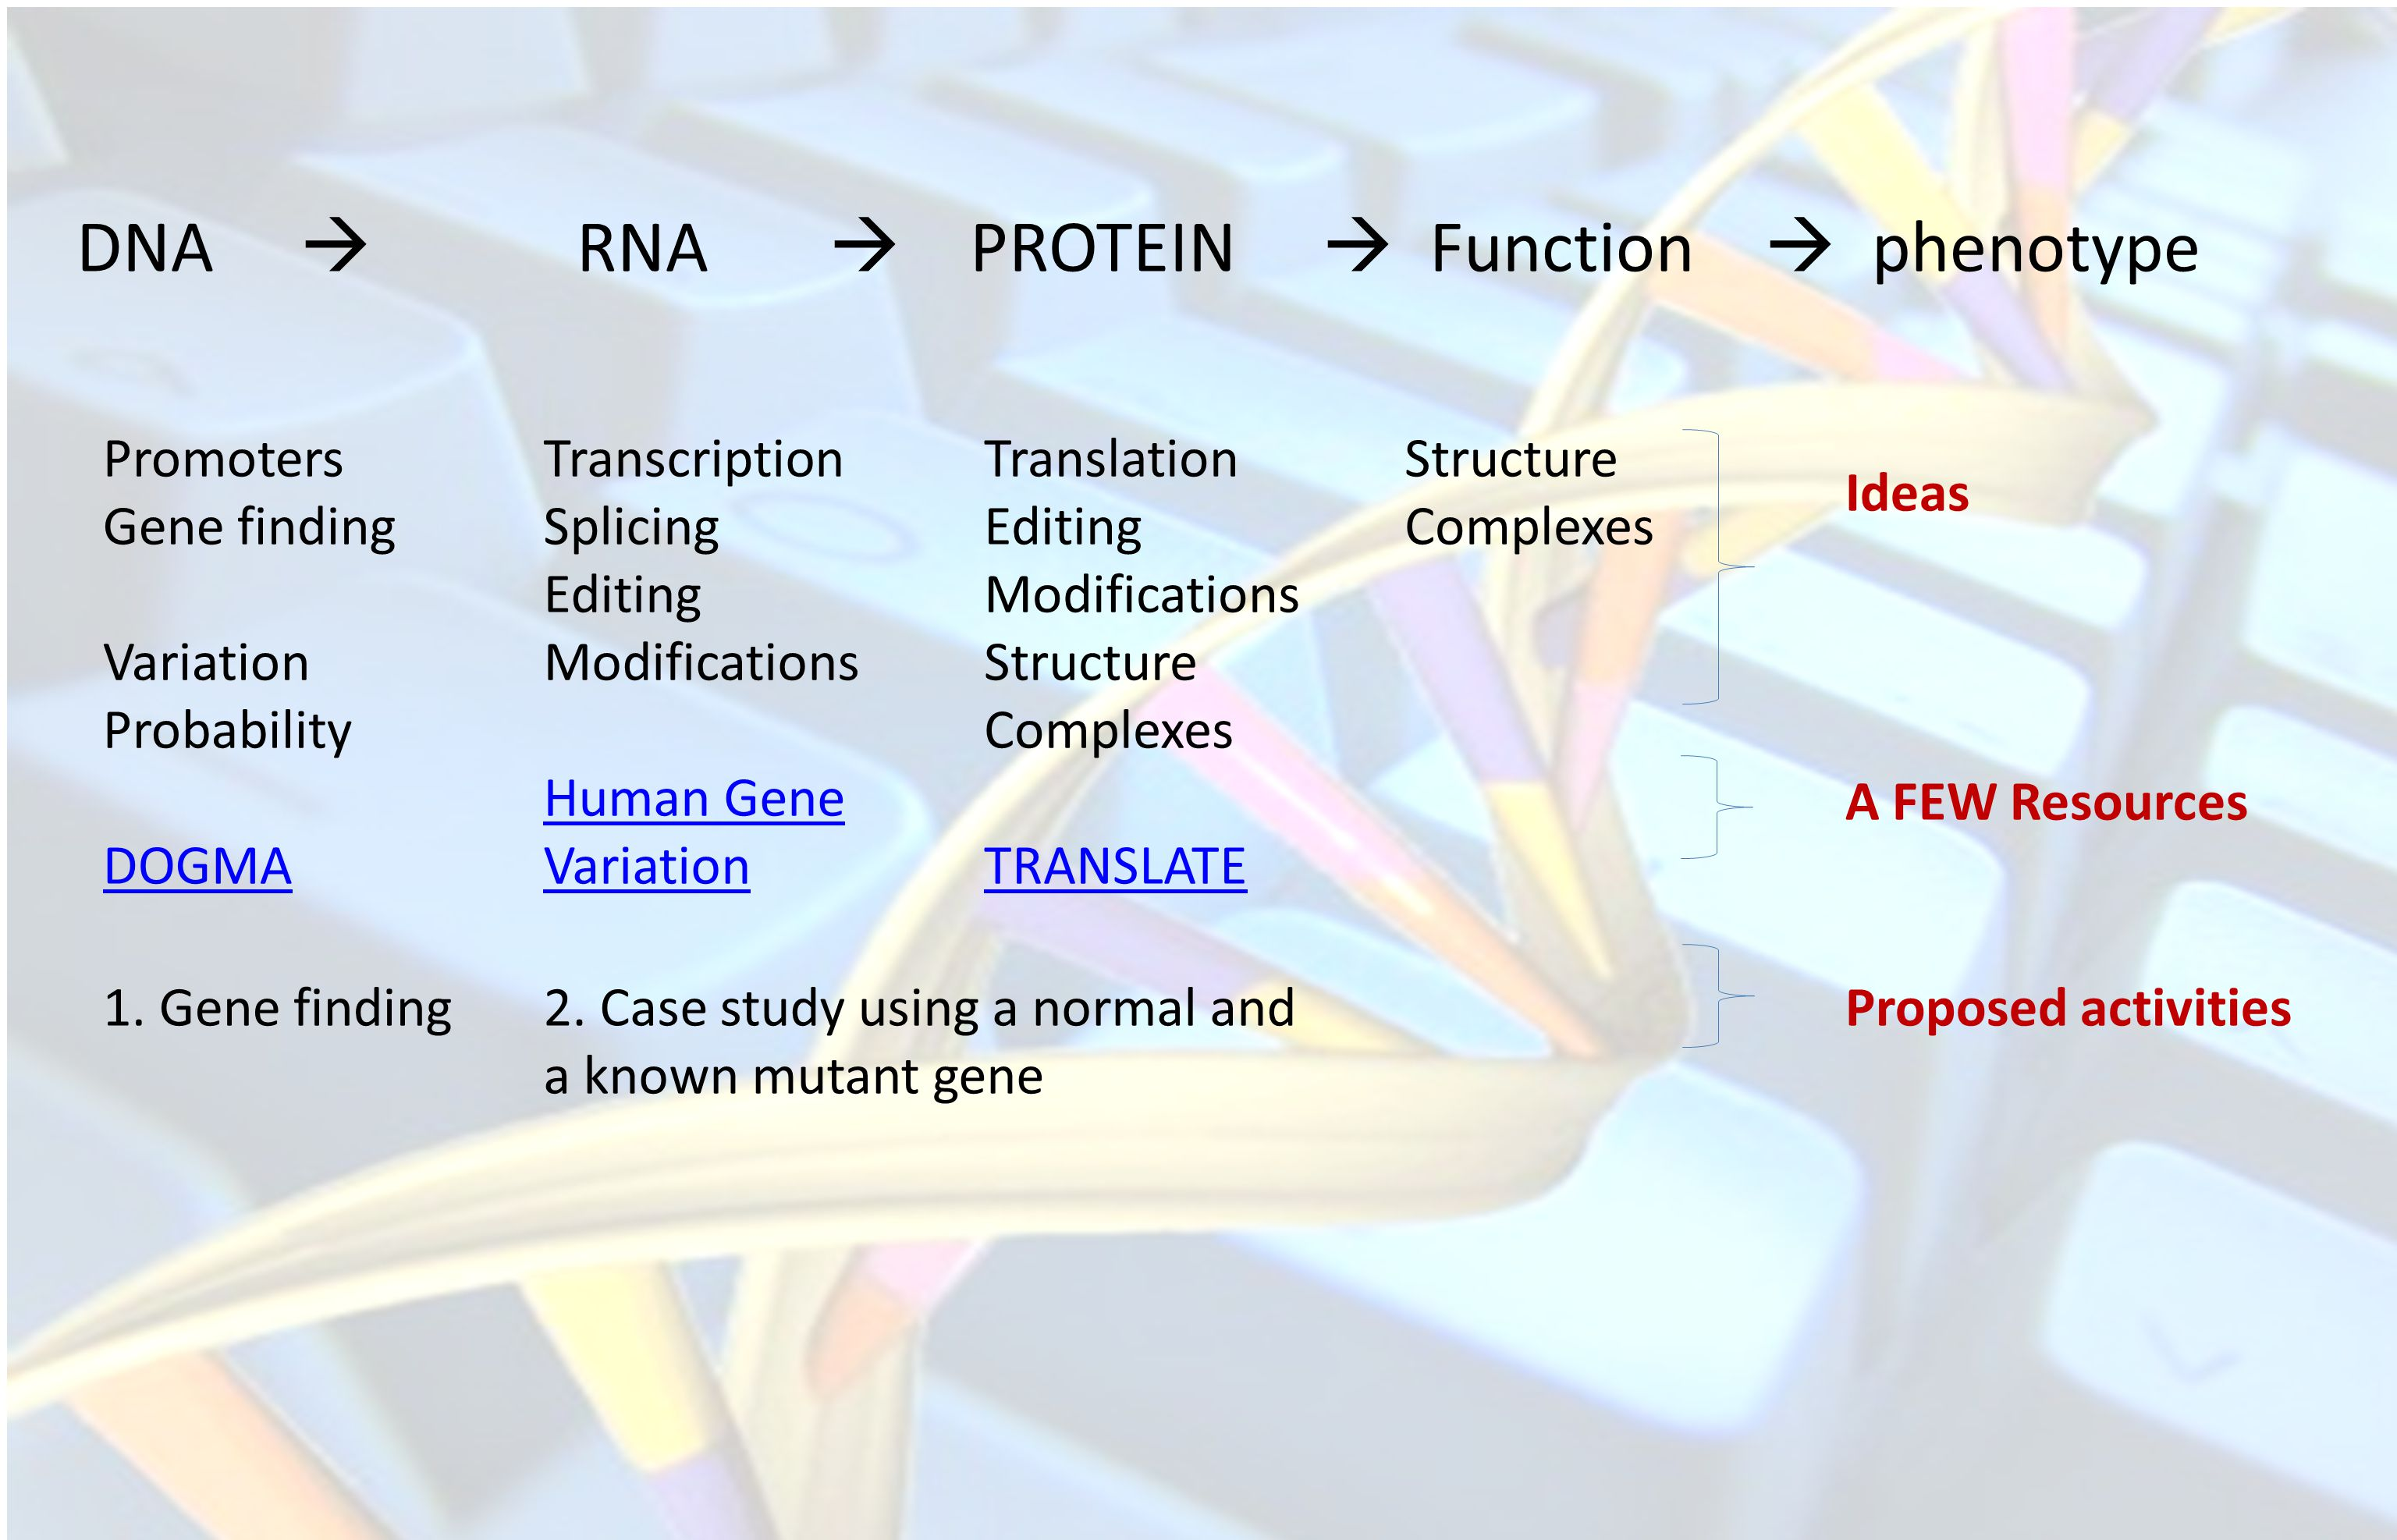 DNA  RNA  PROTEIN  Function  phenotype Promoters Gene finding Variation Probability DOGMA Transcription Splicing Editing Modifications Human Gene Variation Translation Editing Modifications Structure Complexes TRANSLATE Structure Complexes 1.